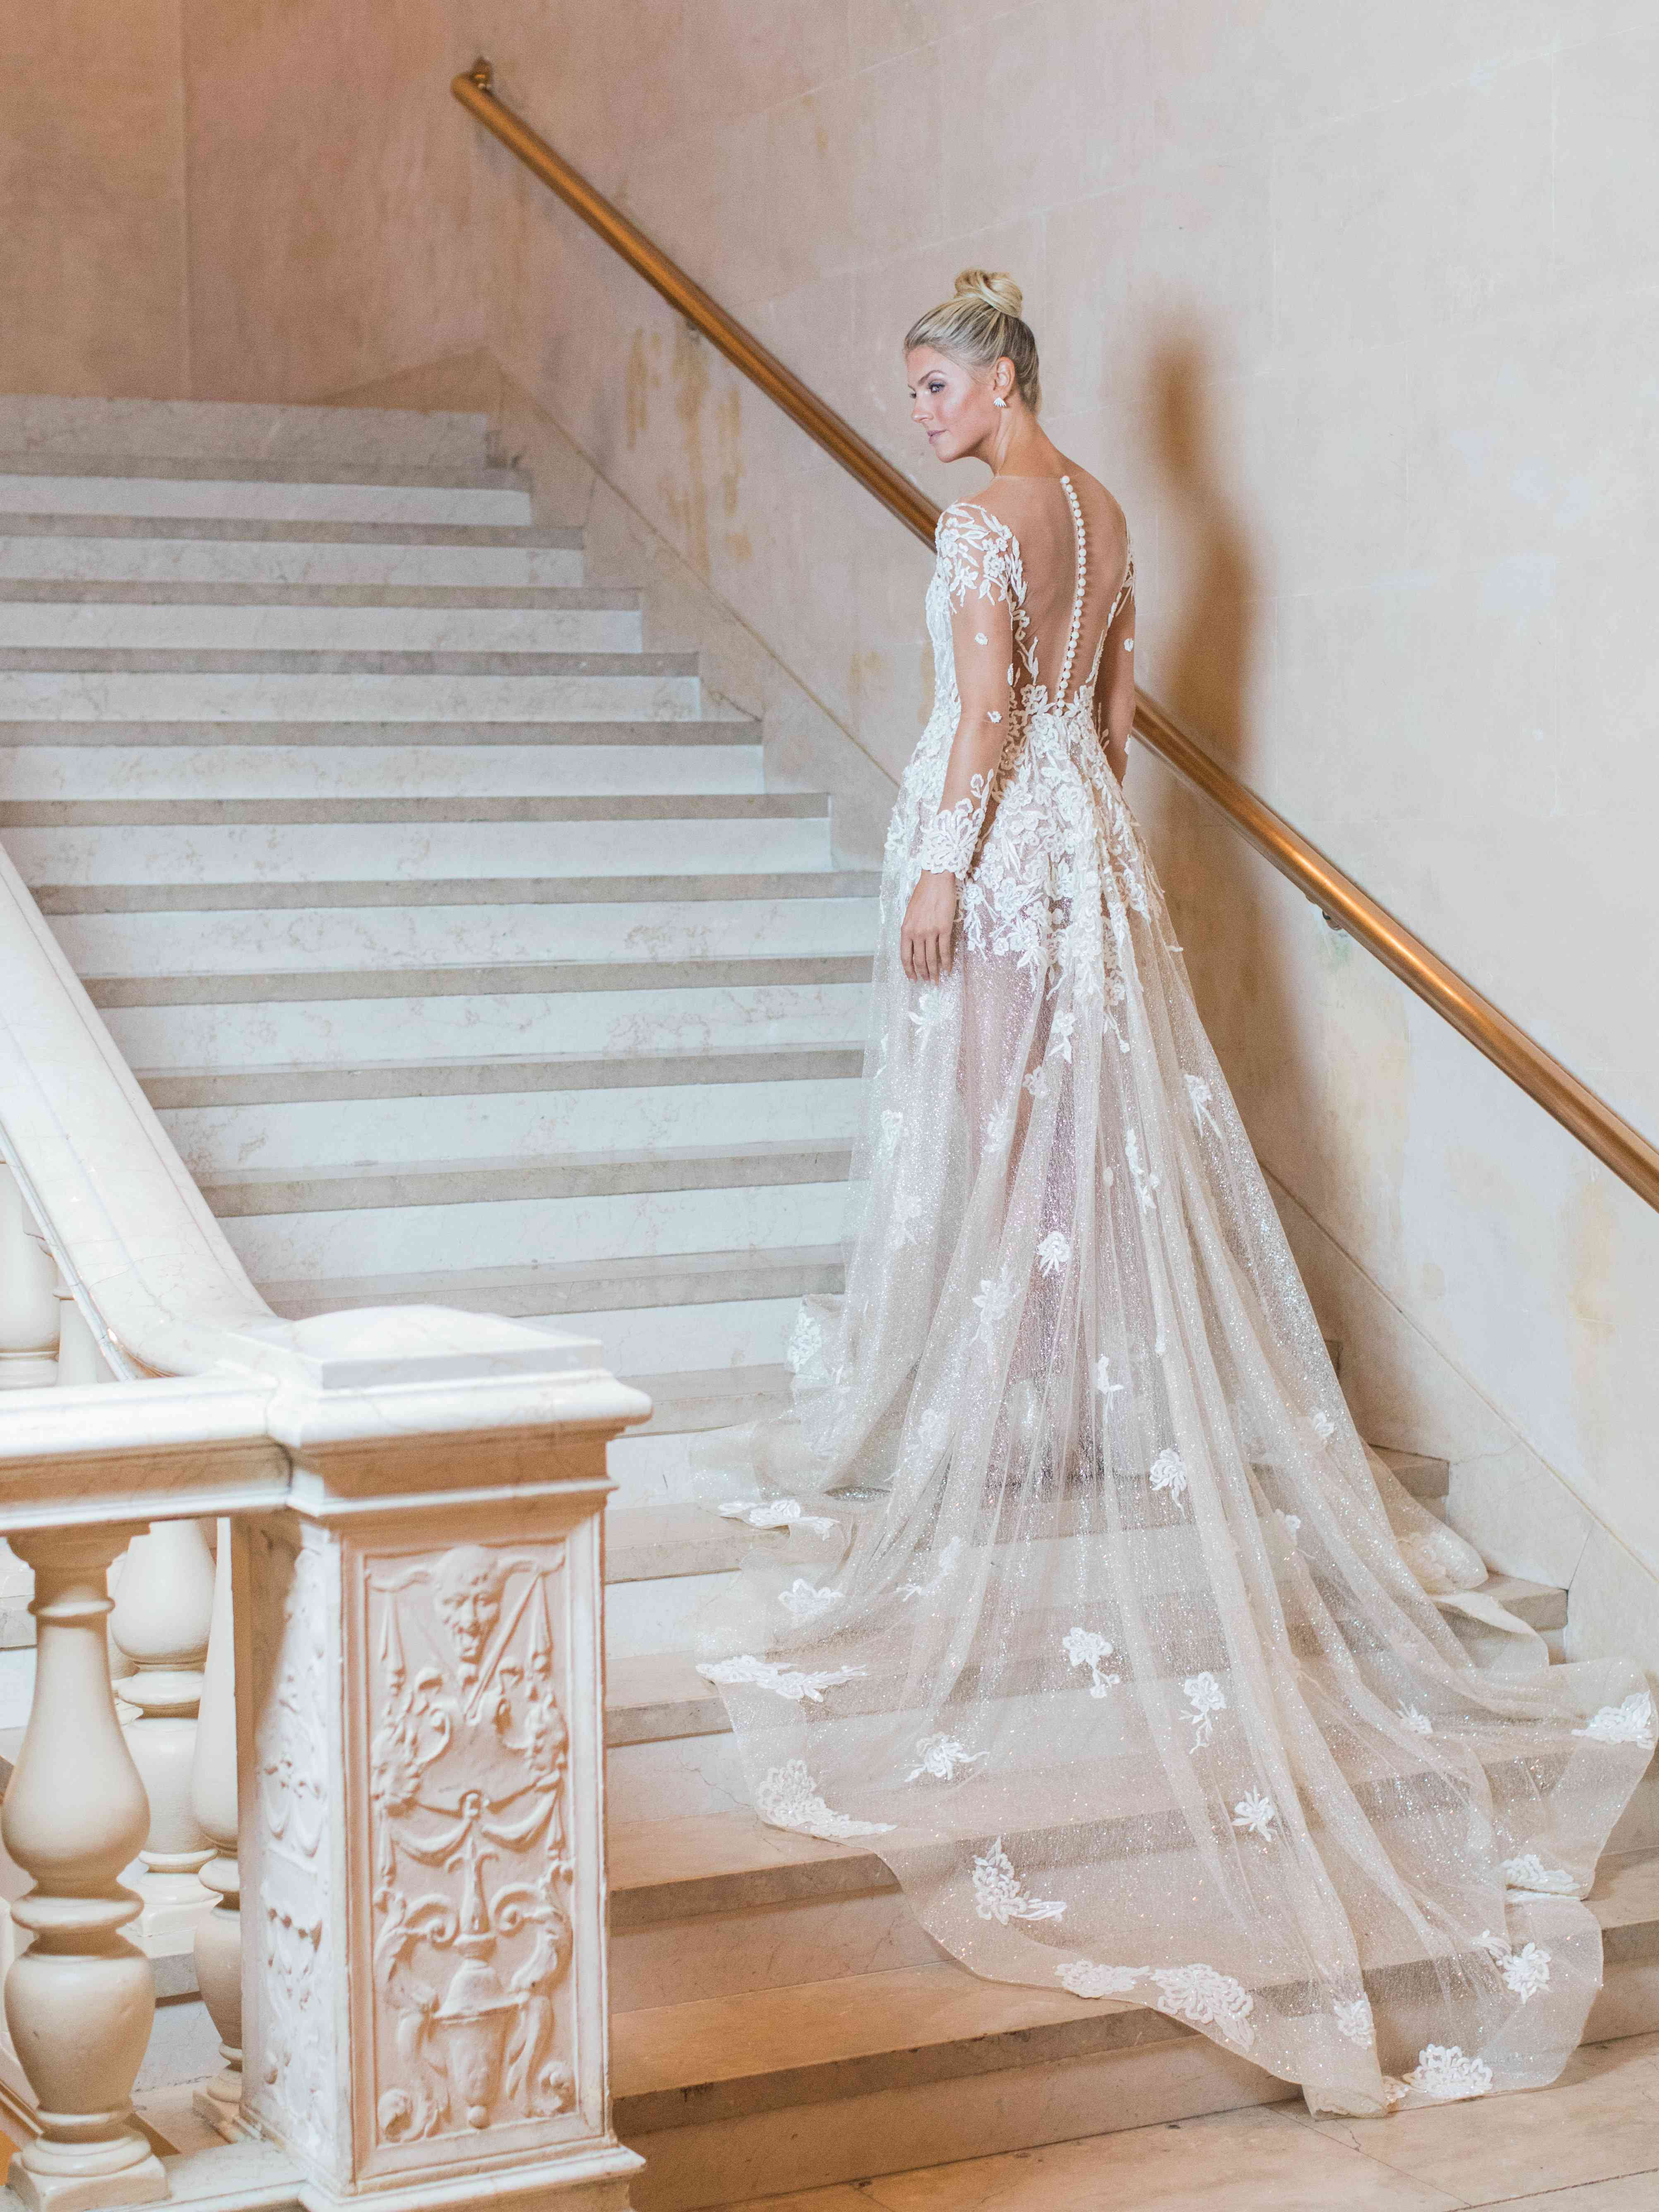 Bride with train on stairs